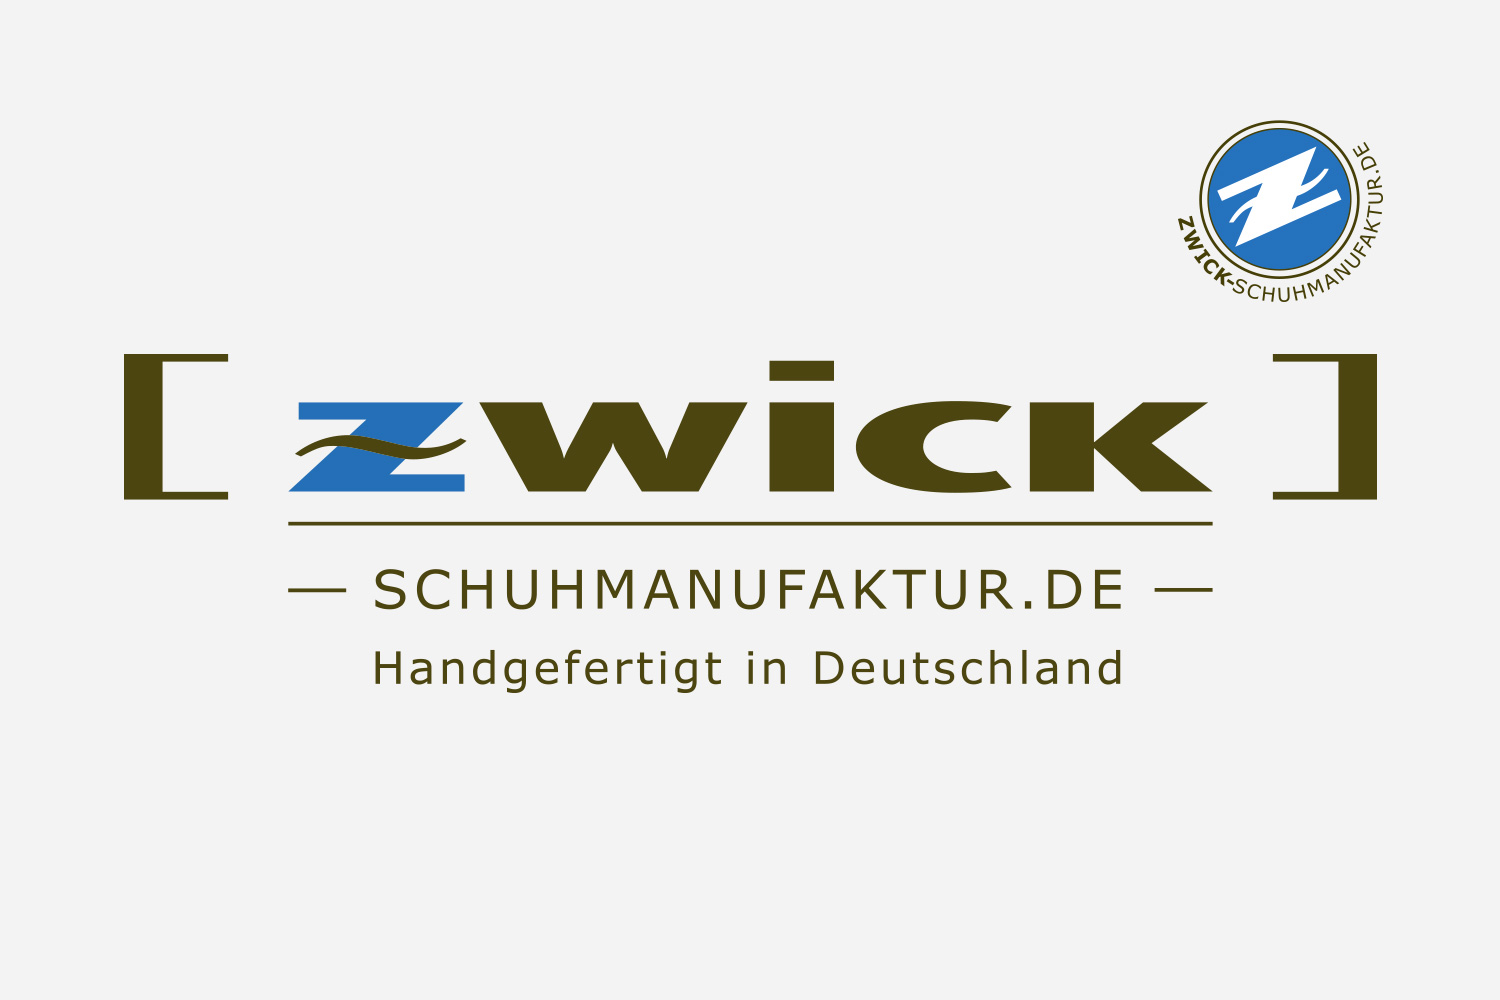 Corporate Design Zwick Schuhmanufaktur: Logo/Signet, Icon